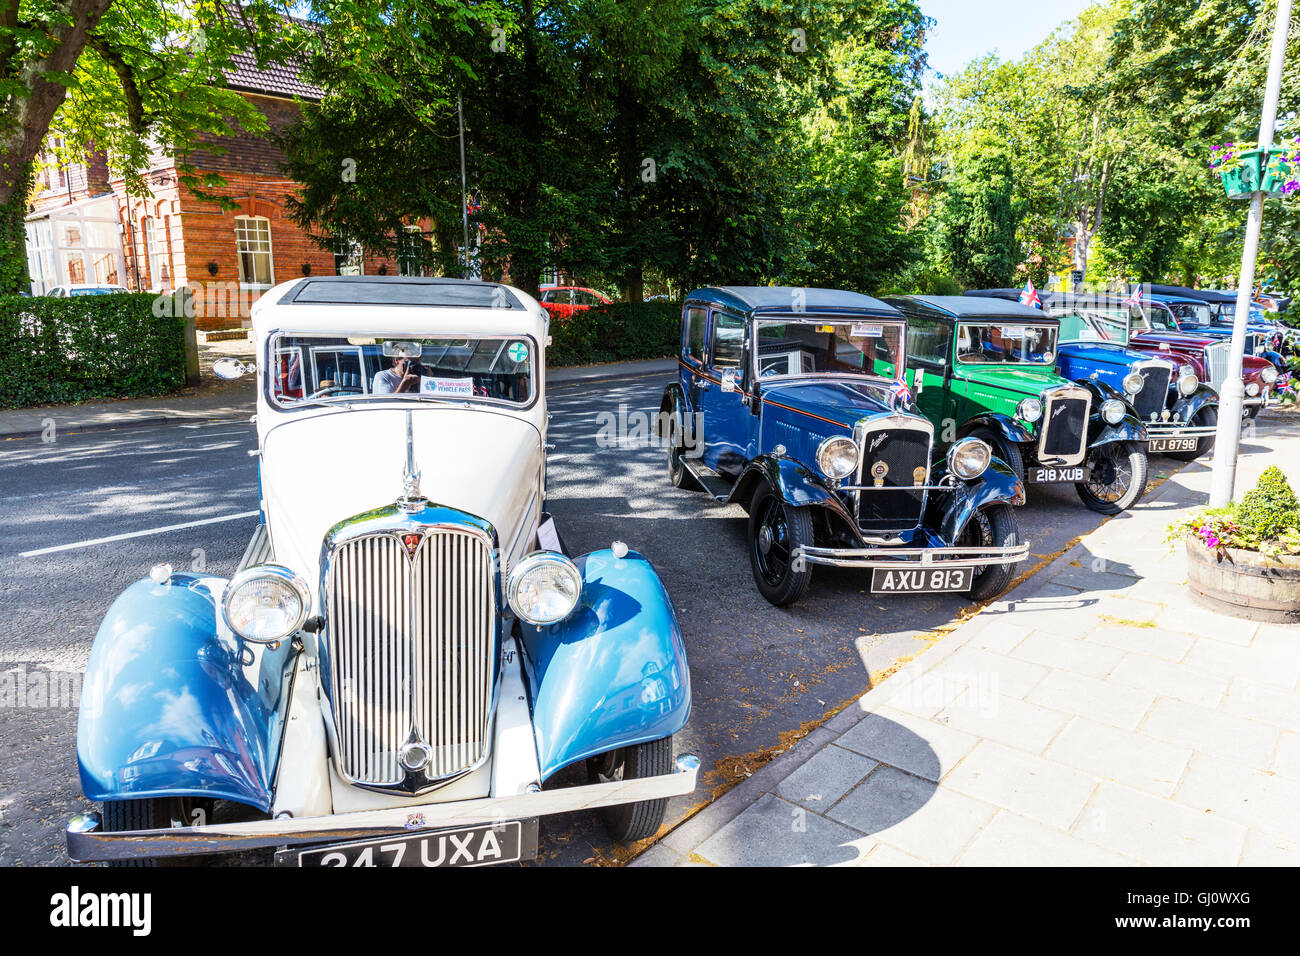 Classic cars car show antique Morris Bedford cars display classics old shows UK GB England English cars - Stock Image